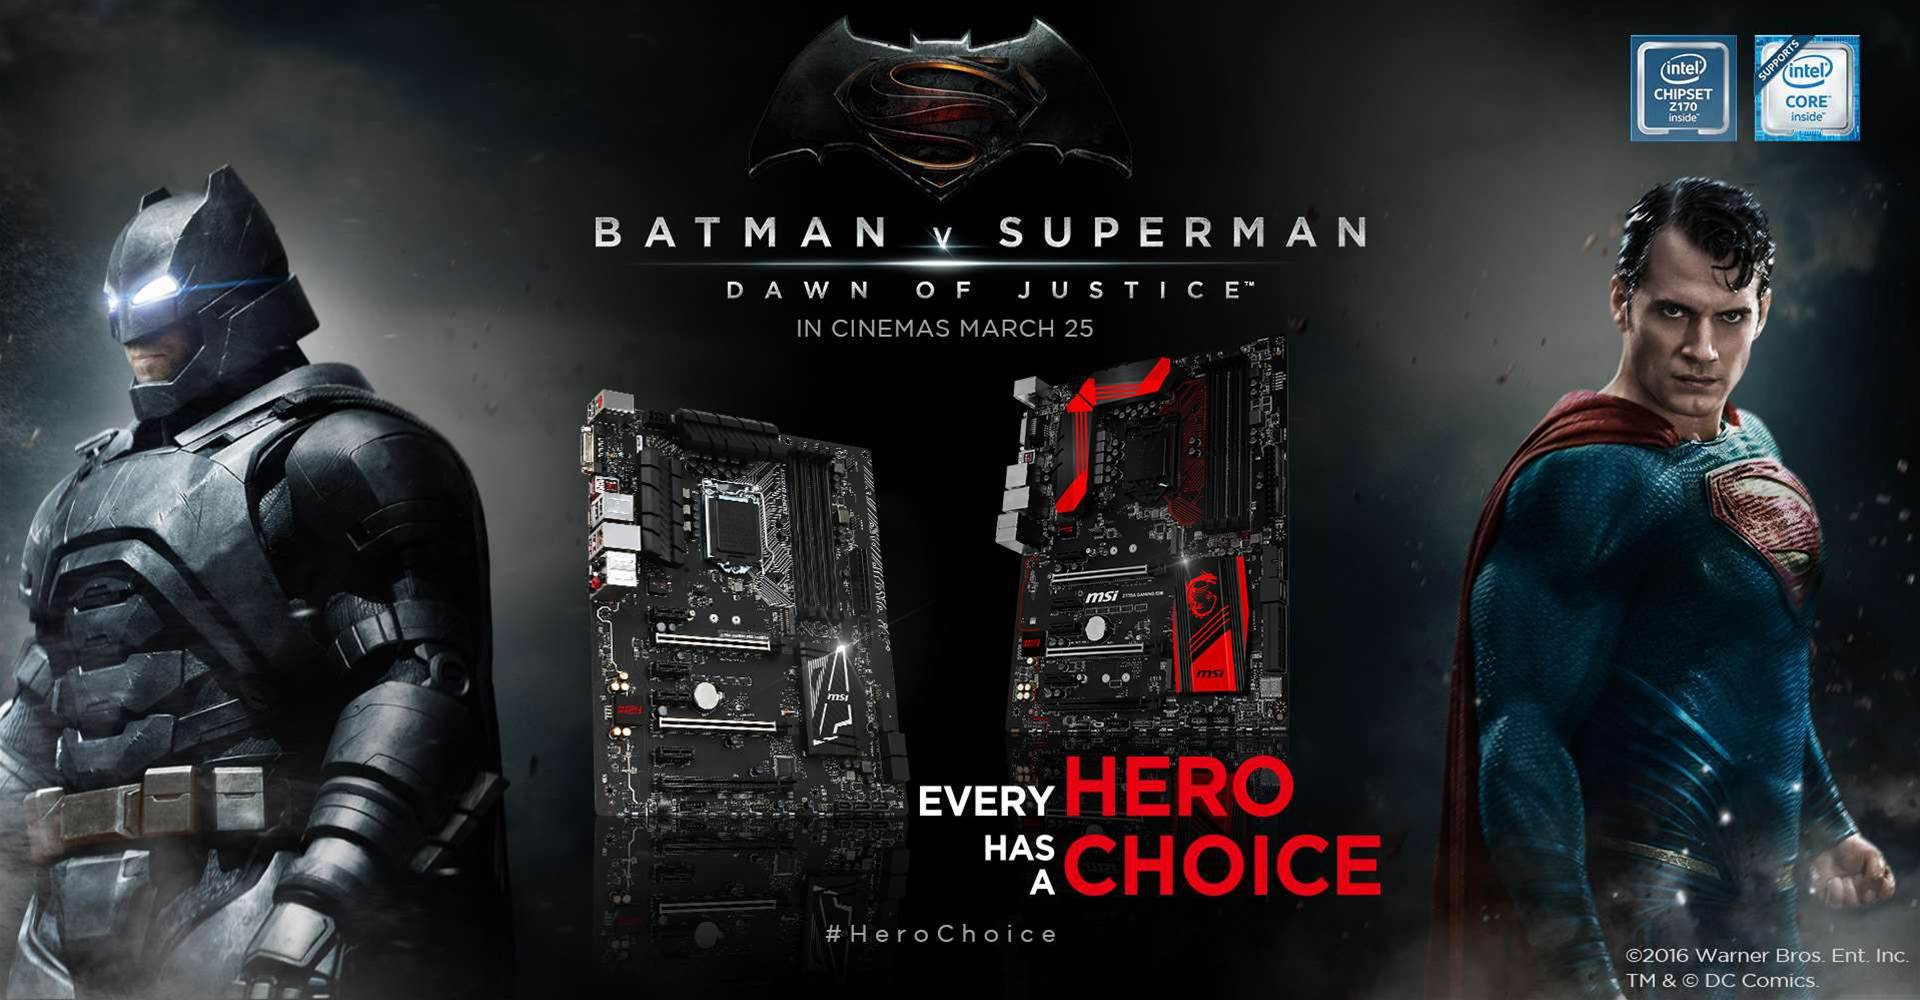 MSI partners with Warner Bros for Batman v Superman tie-in